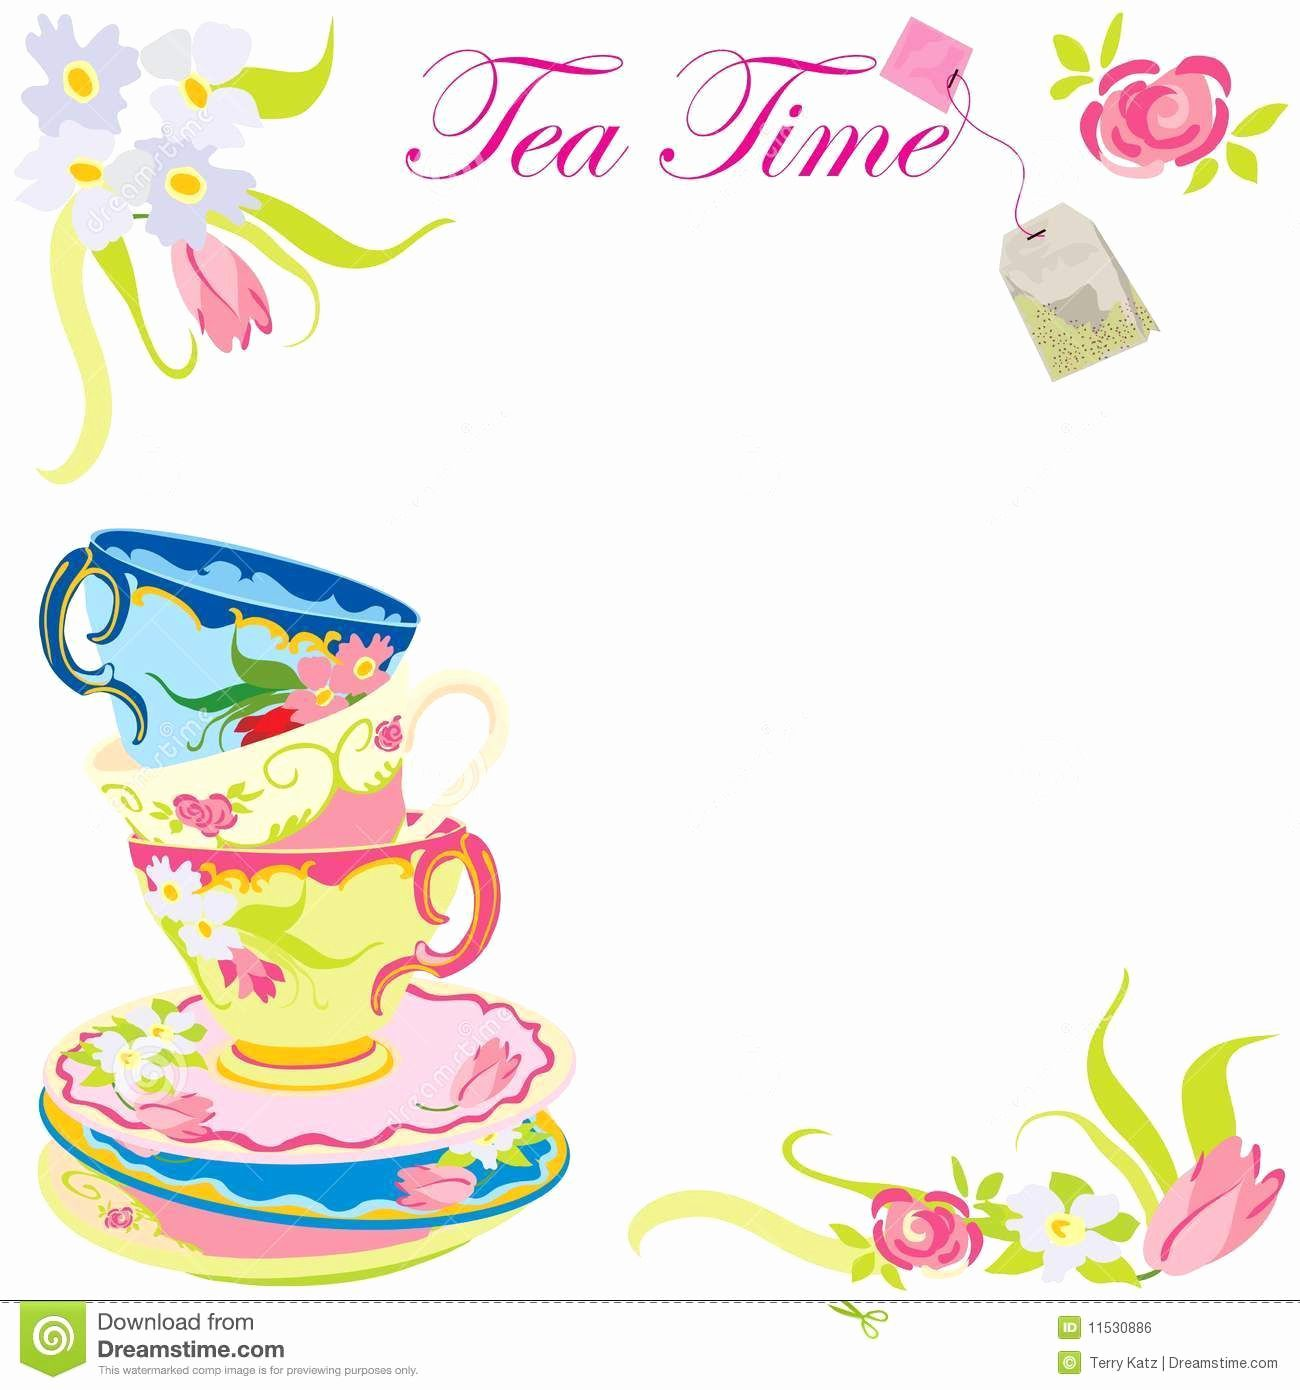 009 Stirring Tea Party Invitation Template Sample  Vintage Free Editable Card PdfFull